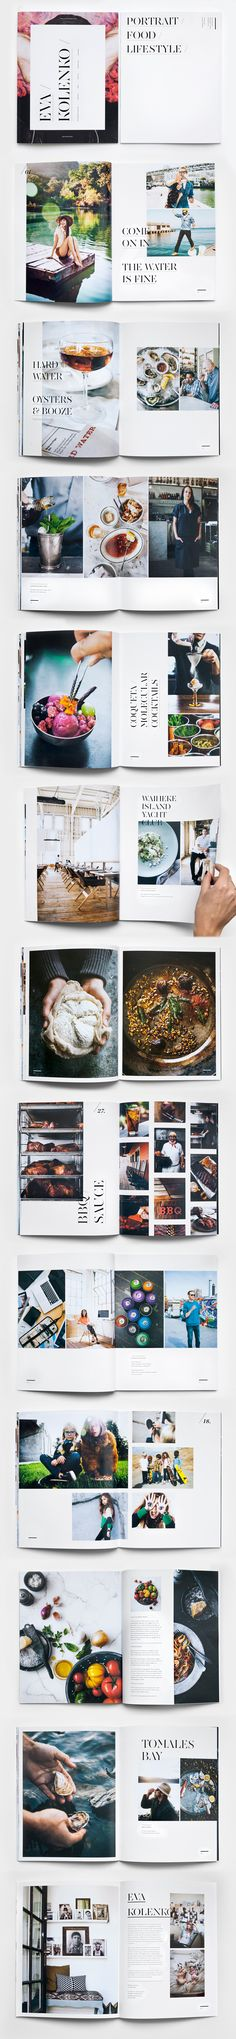 Excellent #booklet layout to showcase this killer photography. #Brochure ideas for photographers.